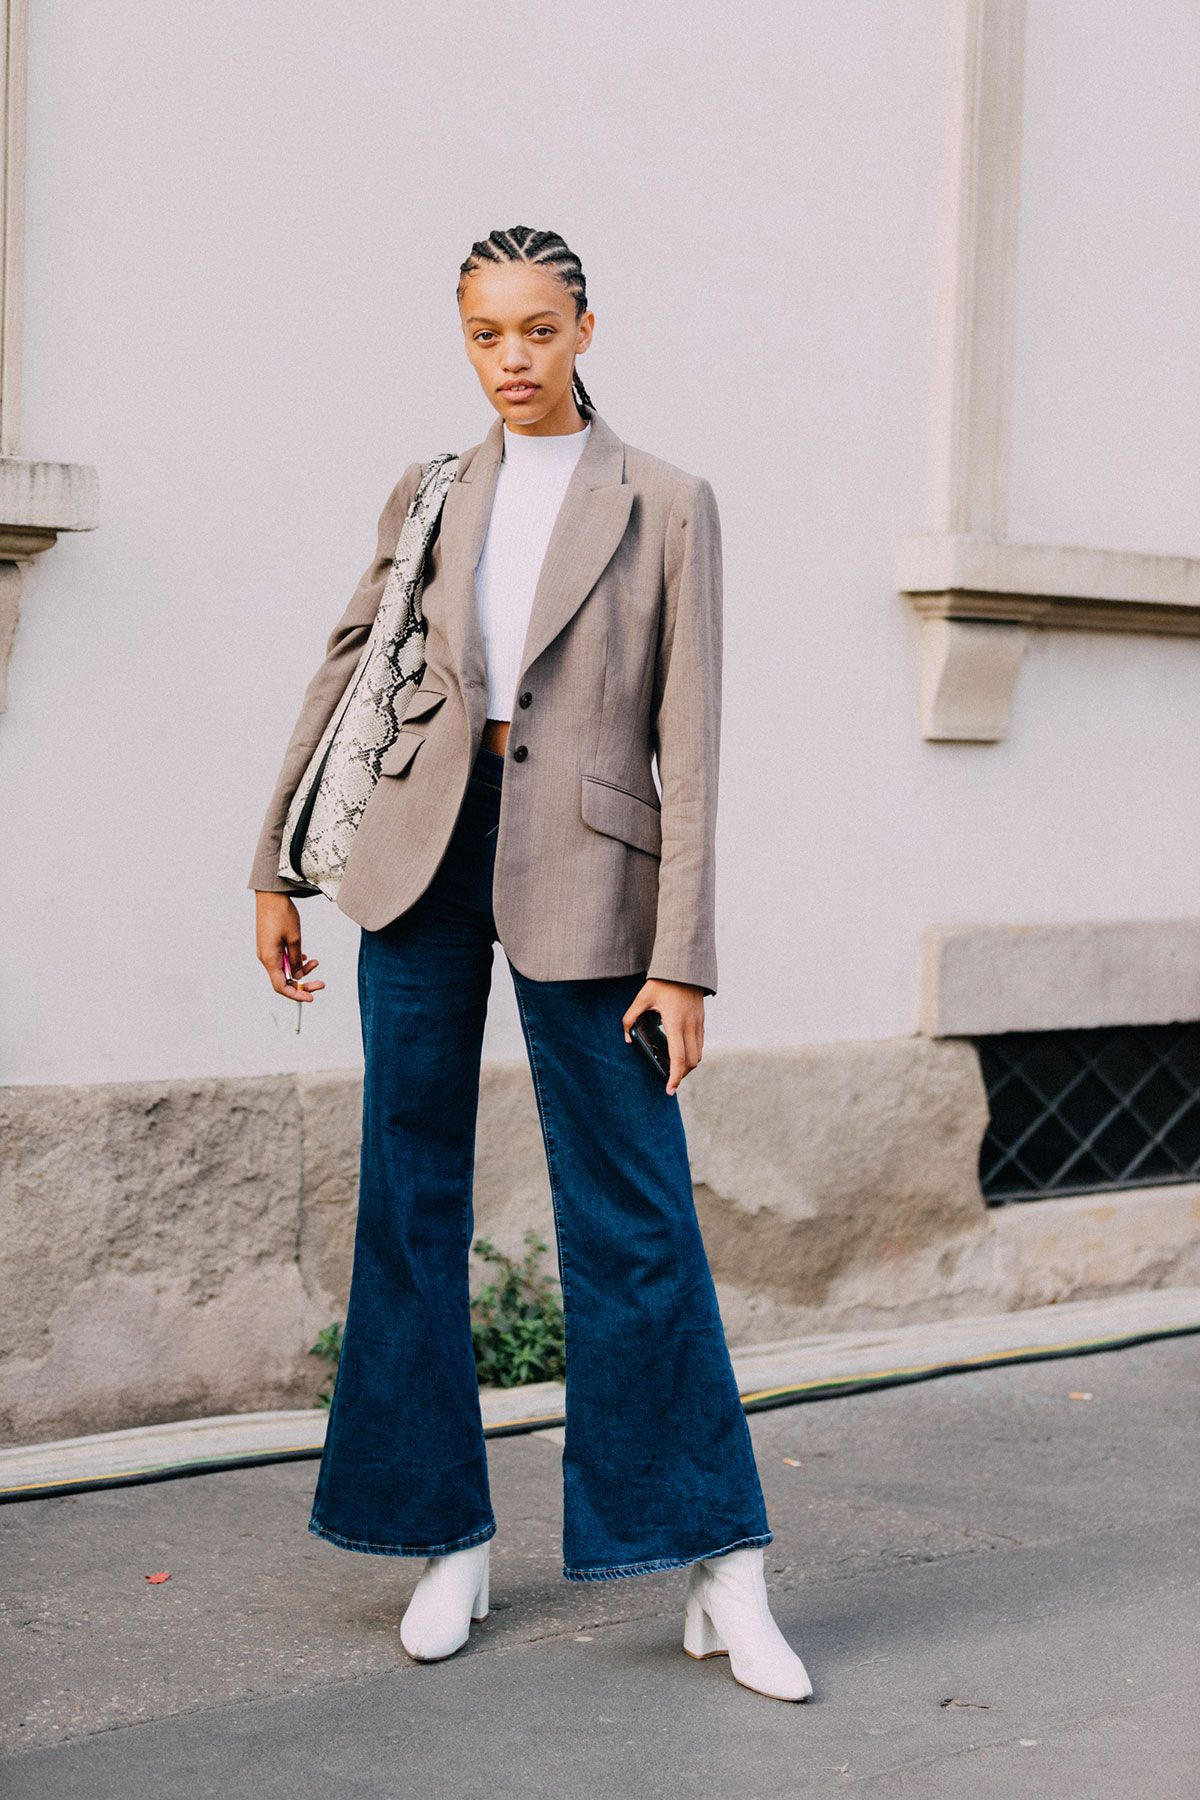 My Friend Asked What to Wear With Flare Jeans, and I Suggested These 6 Basics 22